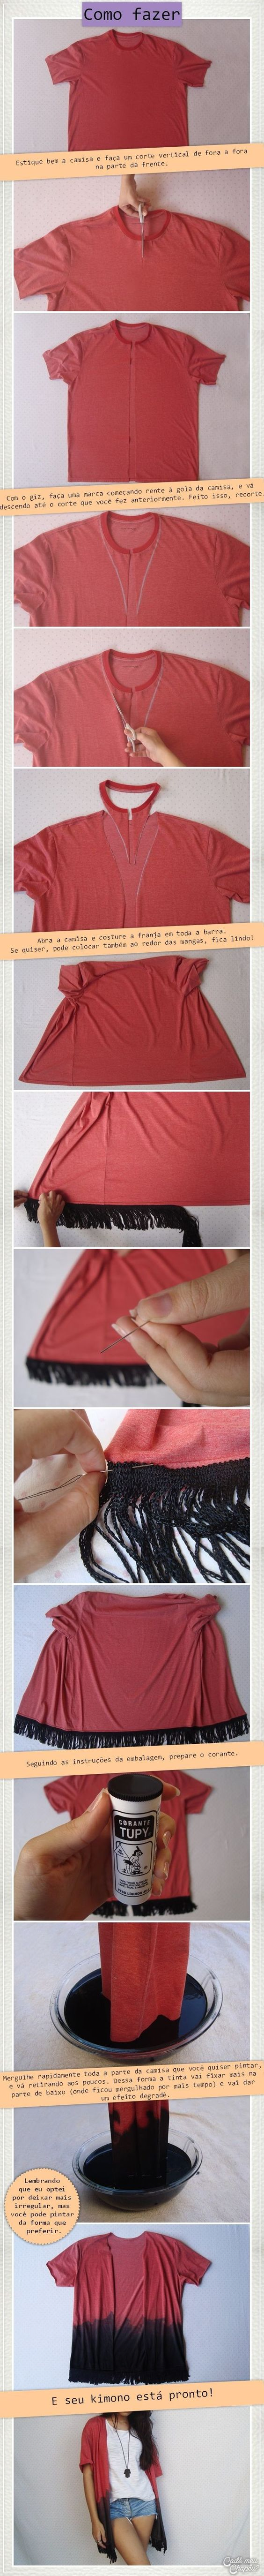 Tutoriales para re-decorar tu ropa